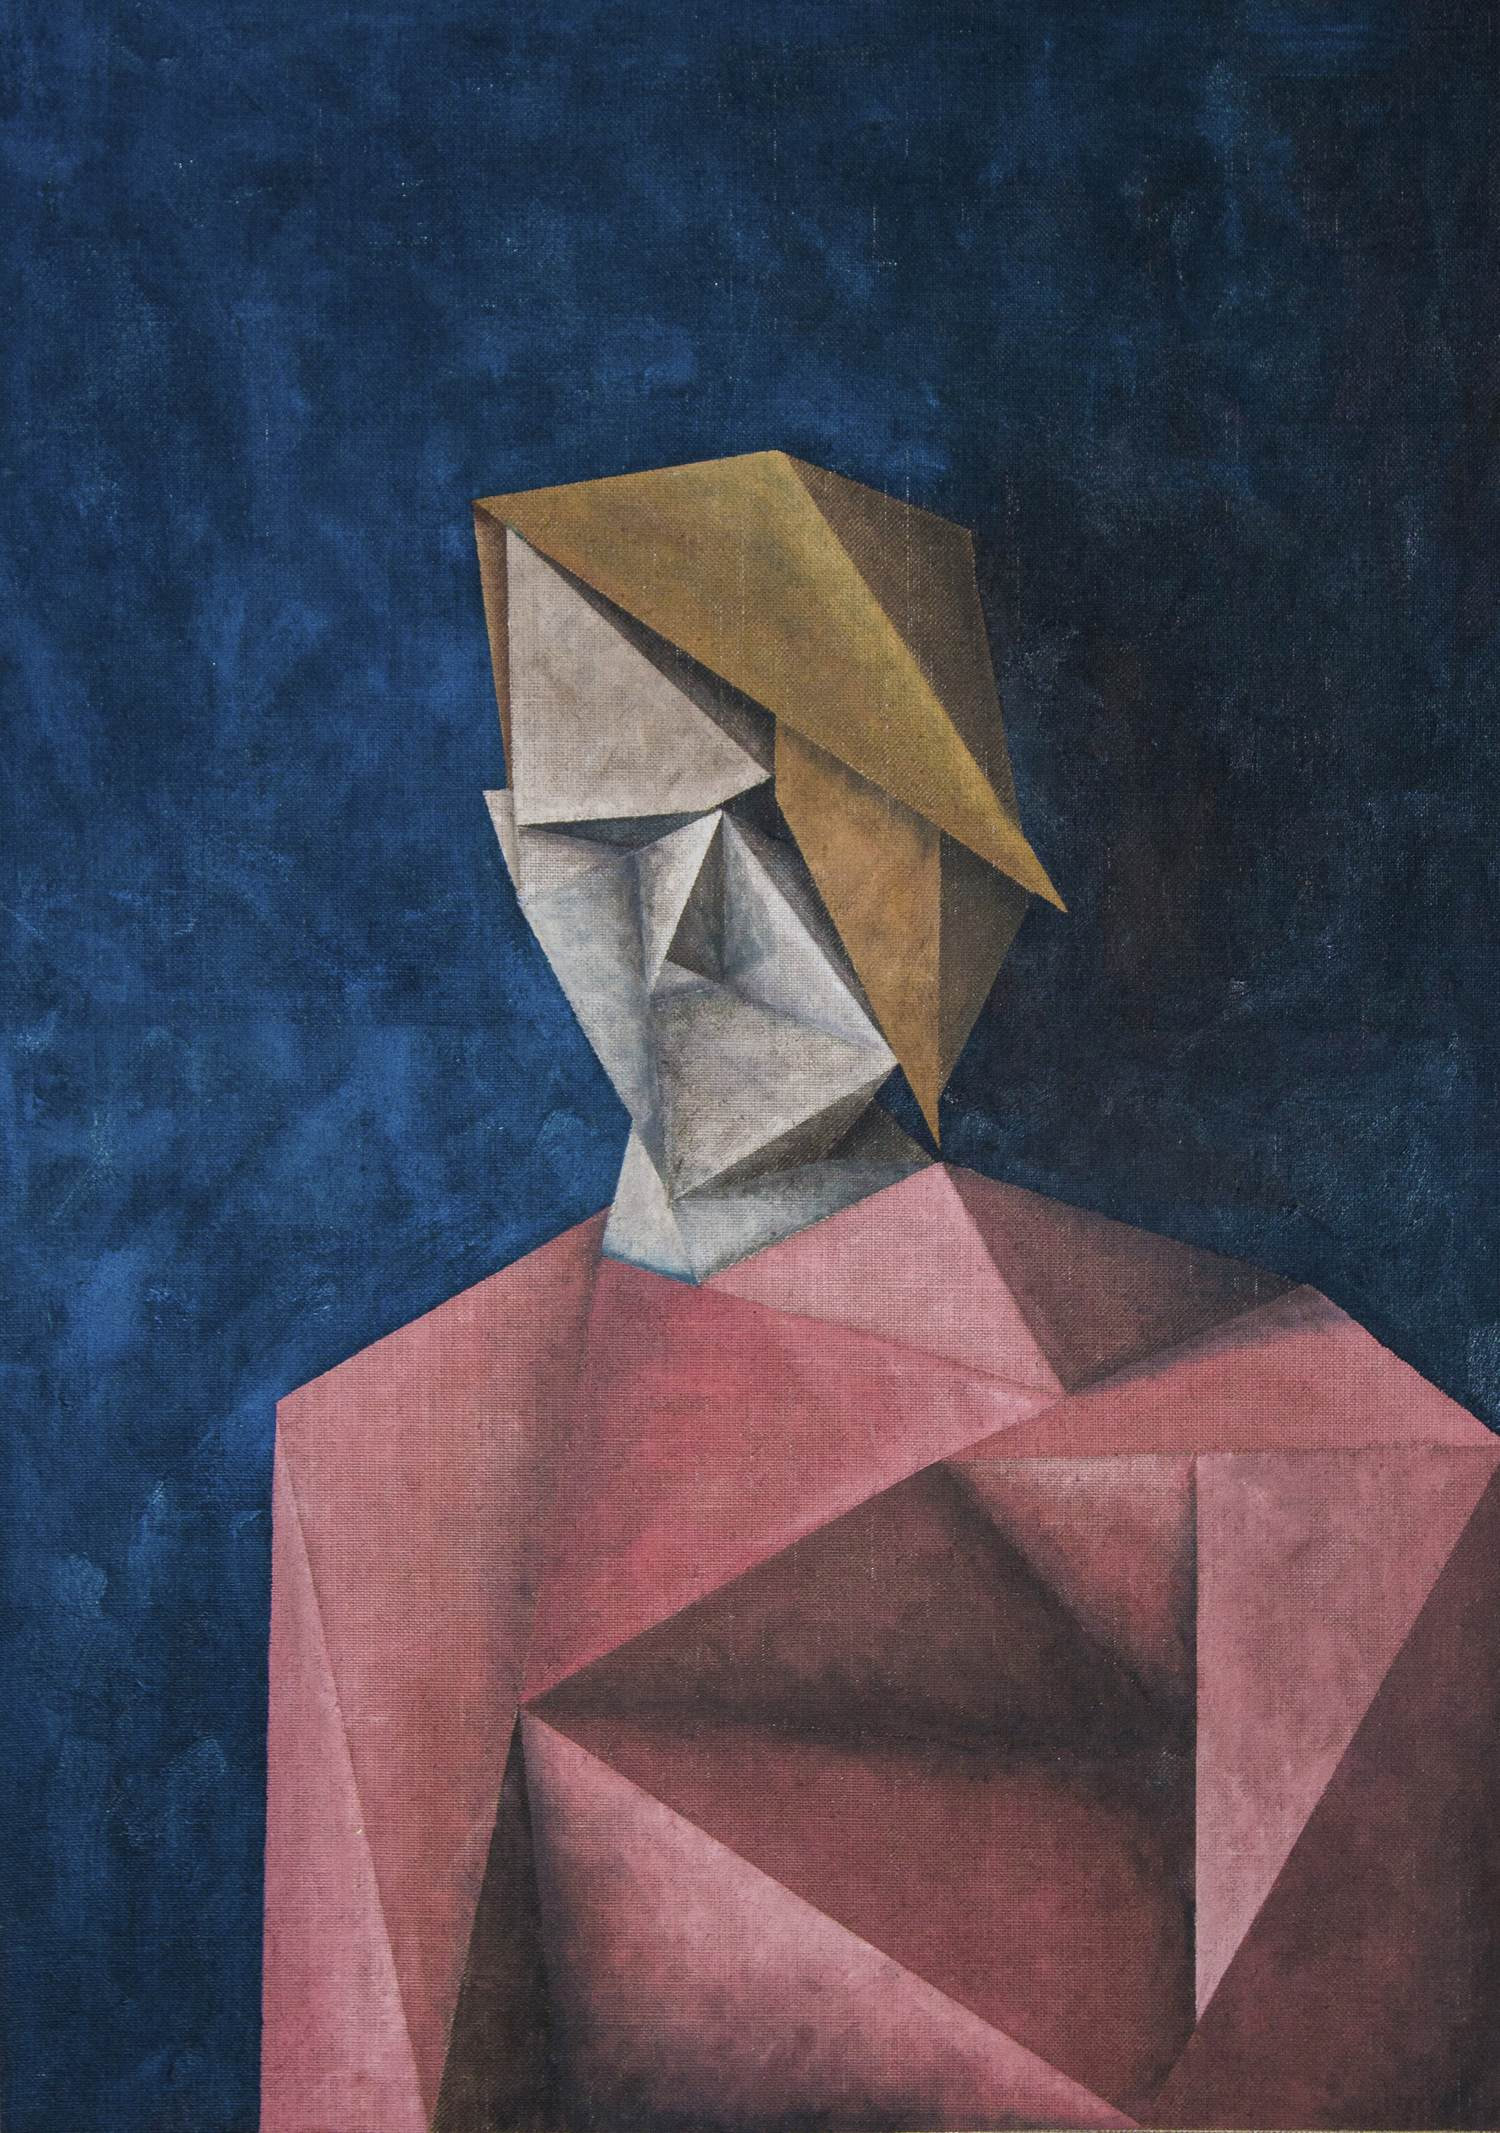 Life's Sublime Moments Unearthed in Cubist Paintings by Connor Addison